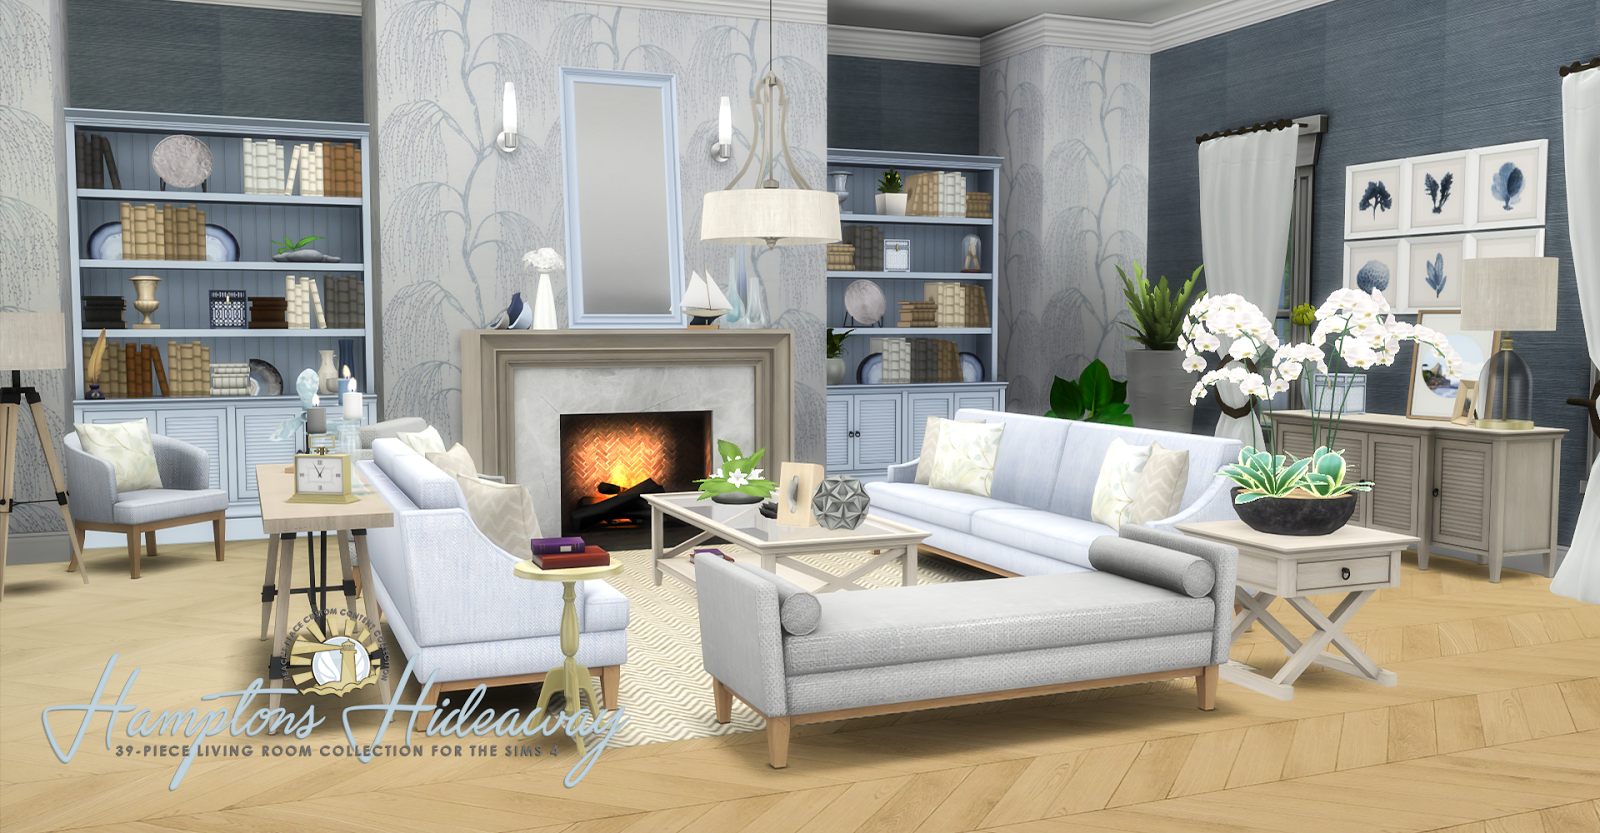 My sims 4 blog updated hamptons hideaway living room for Sims 3 living room ideas